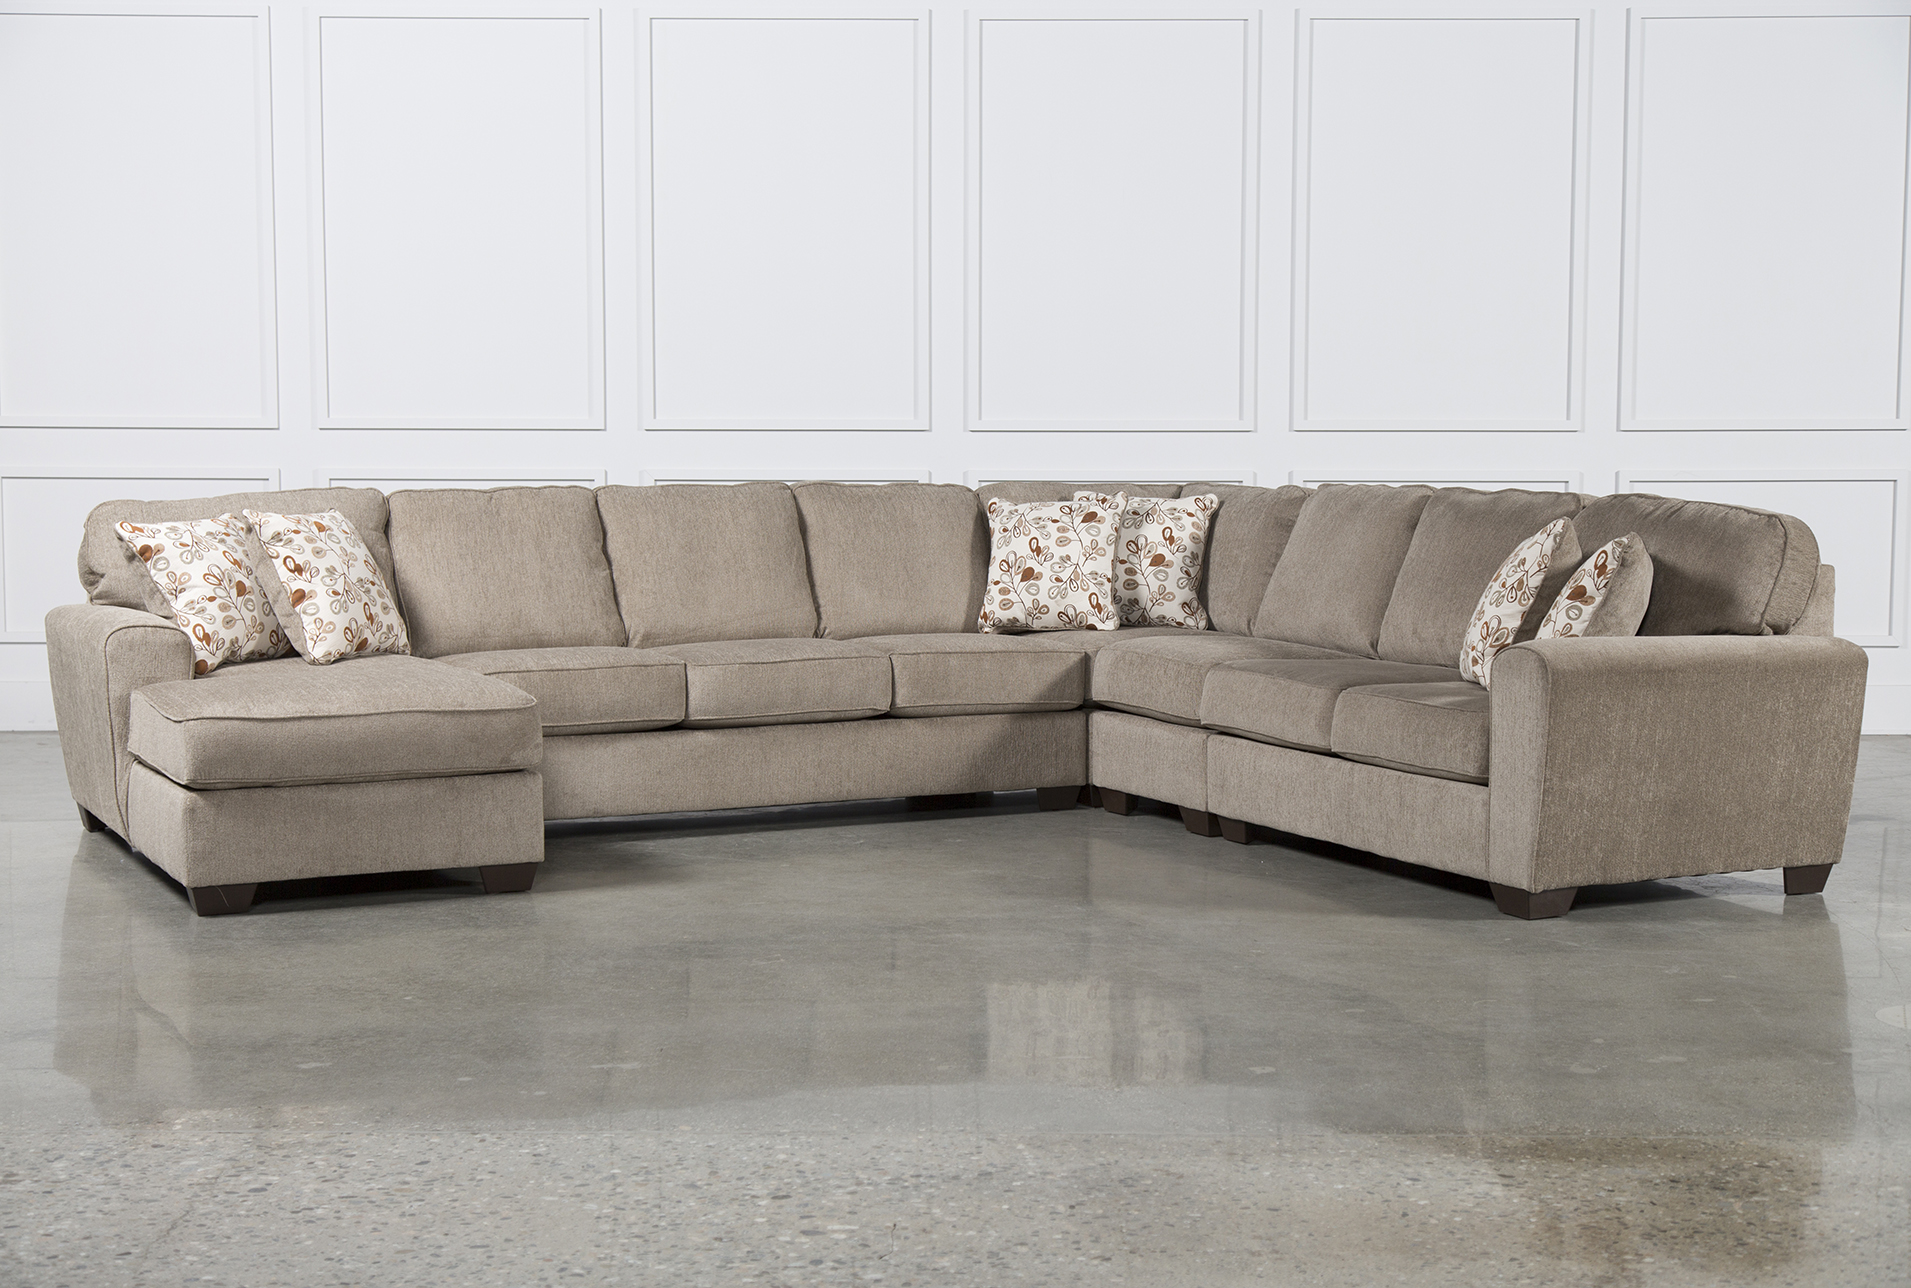 Superbe Patola Park 5 Piece Sectional W/Laf Chaise   360